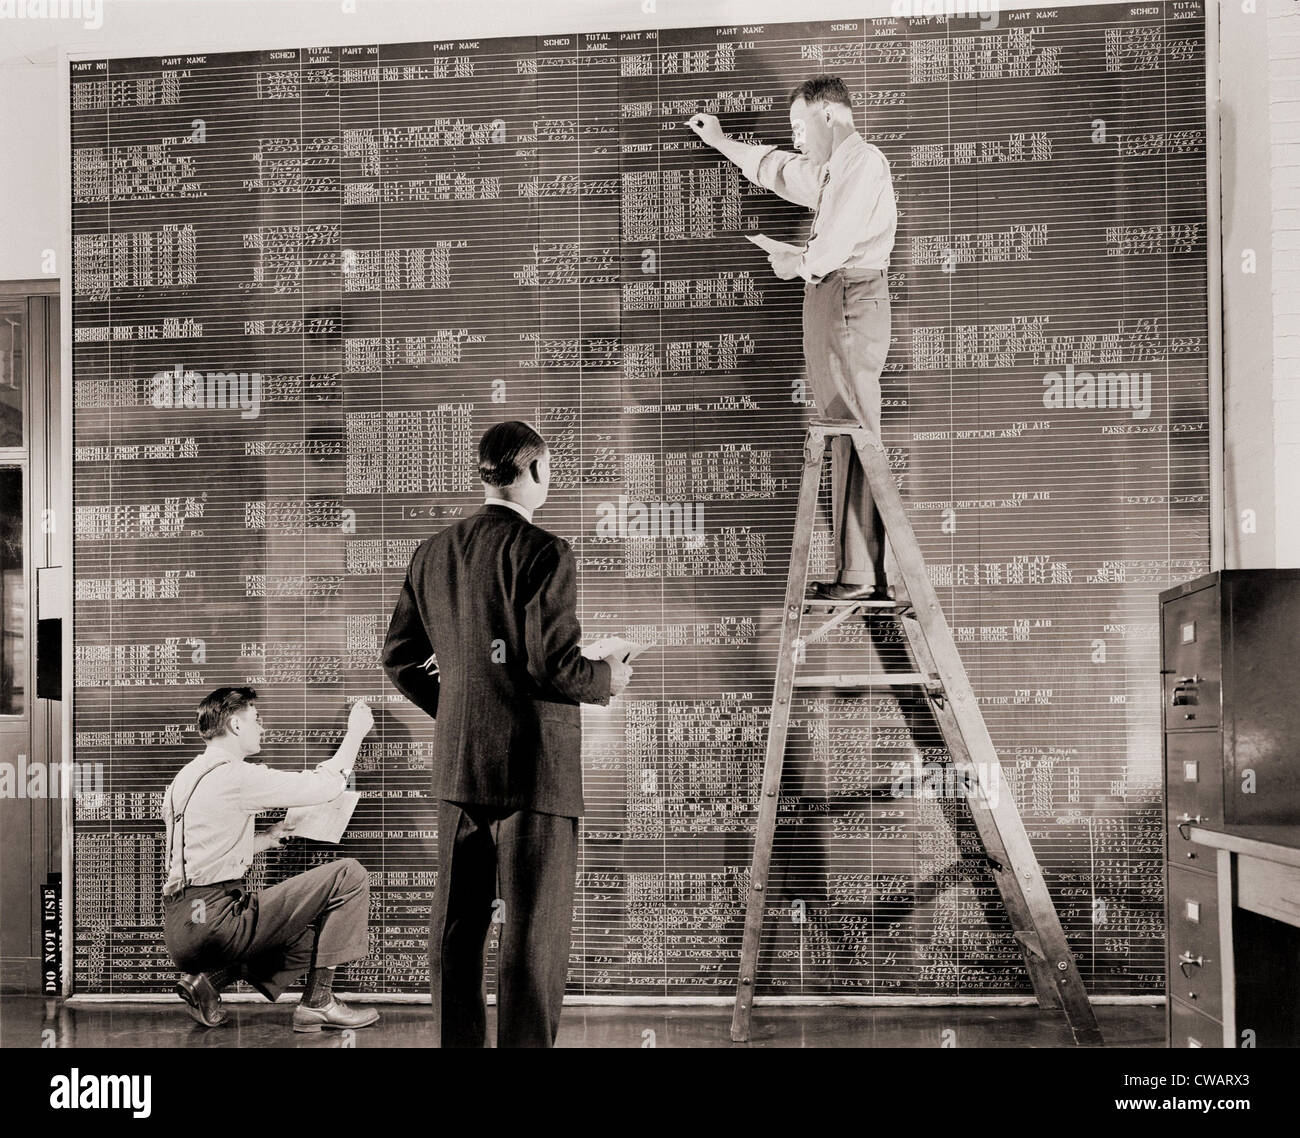 General Motors managers at a large control board, which resembles a spreadsheet, keep check on flow of materials - Stock Image